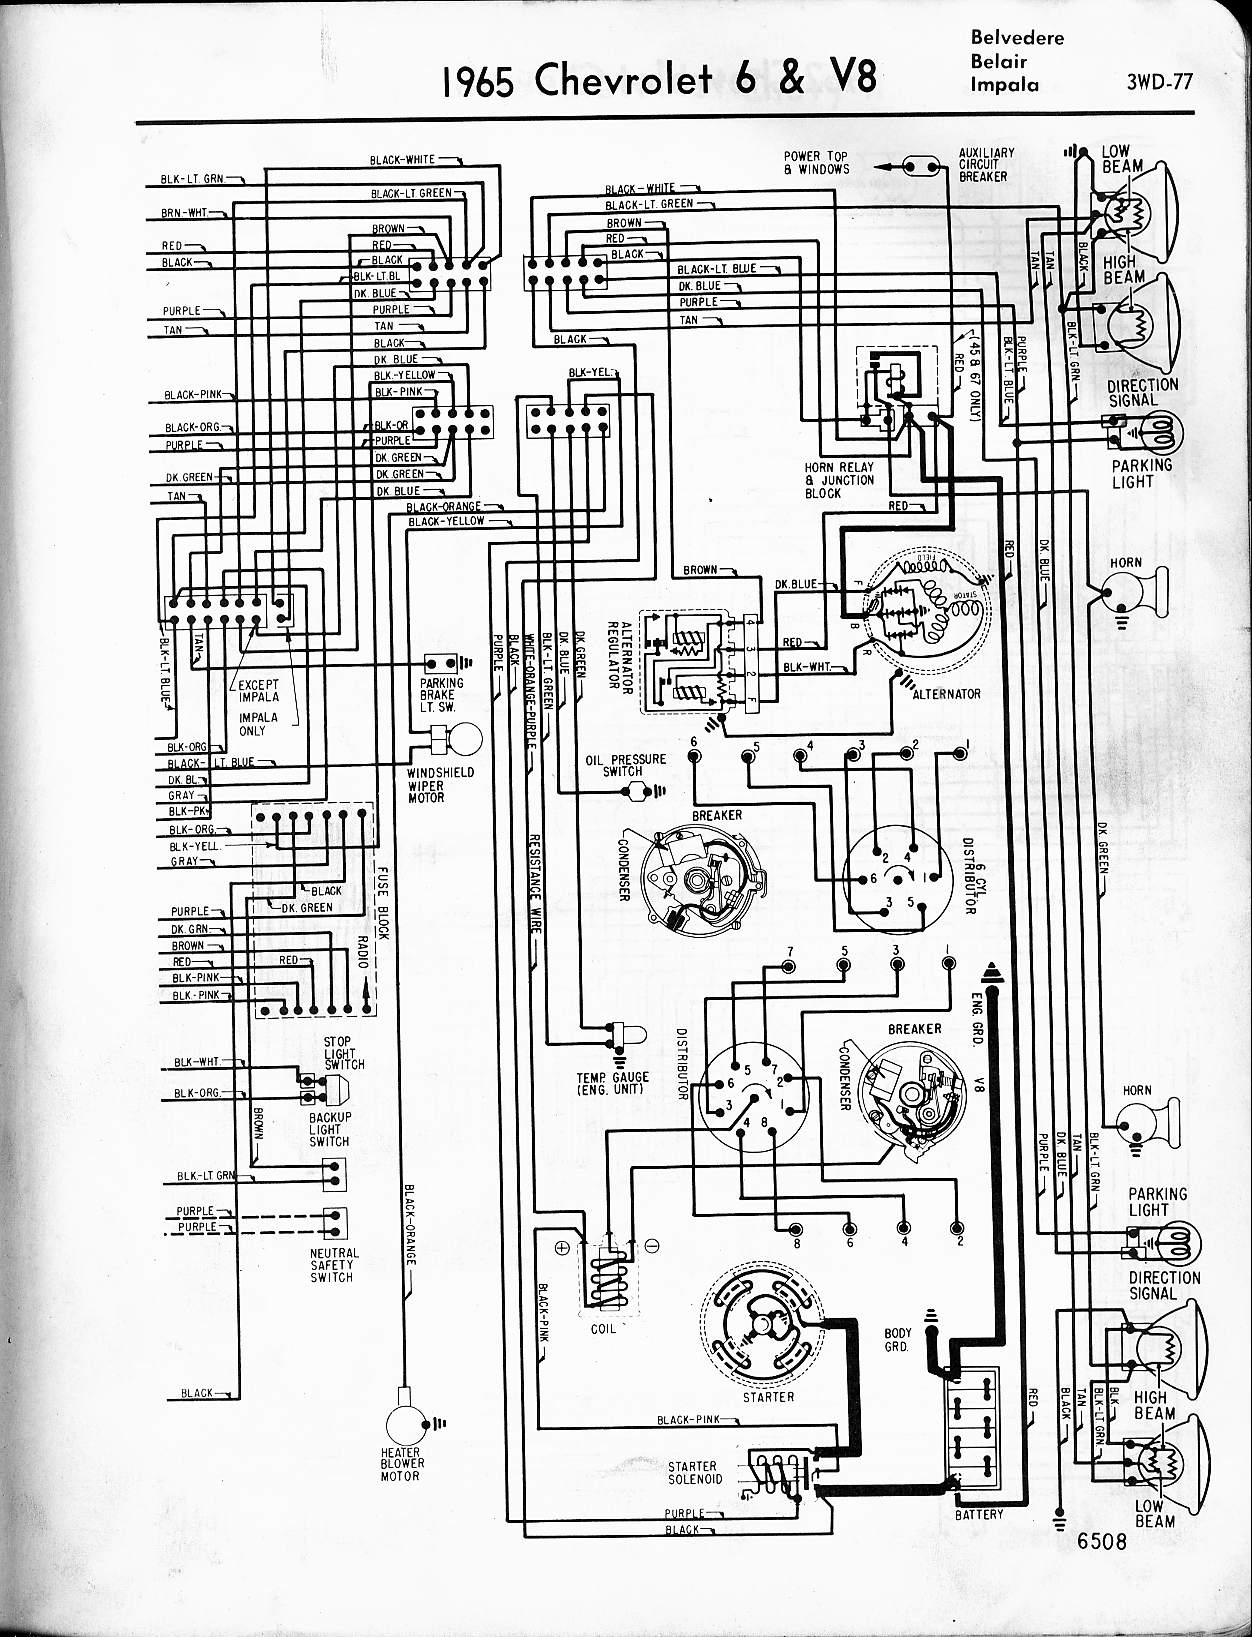 1969 chevelle wiring diagram schematics wiring diagrams u2022 rh seniorlivinguniversity co